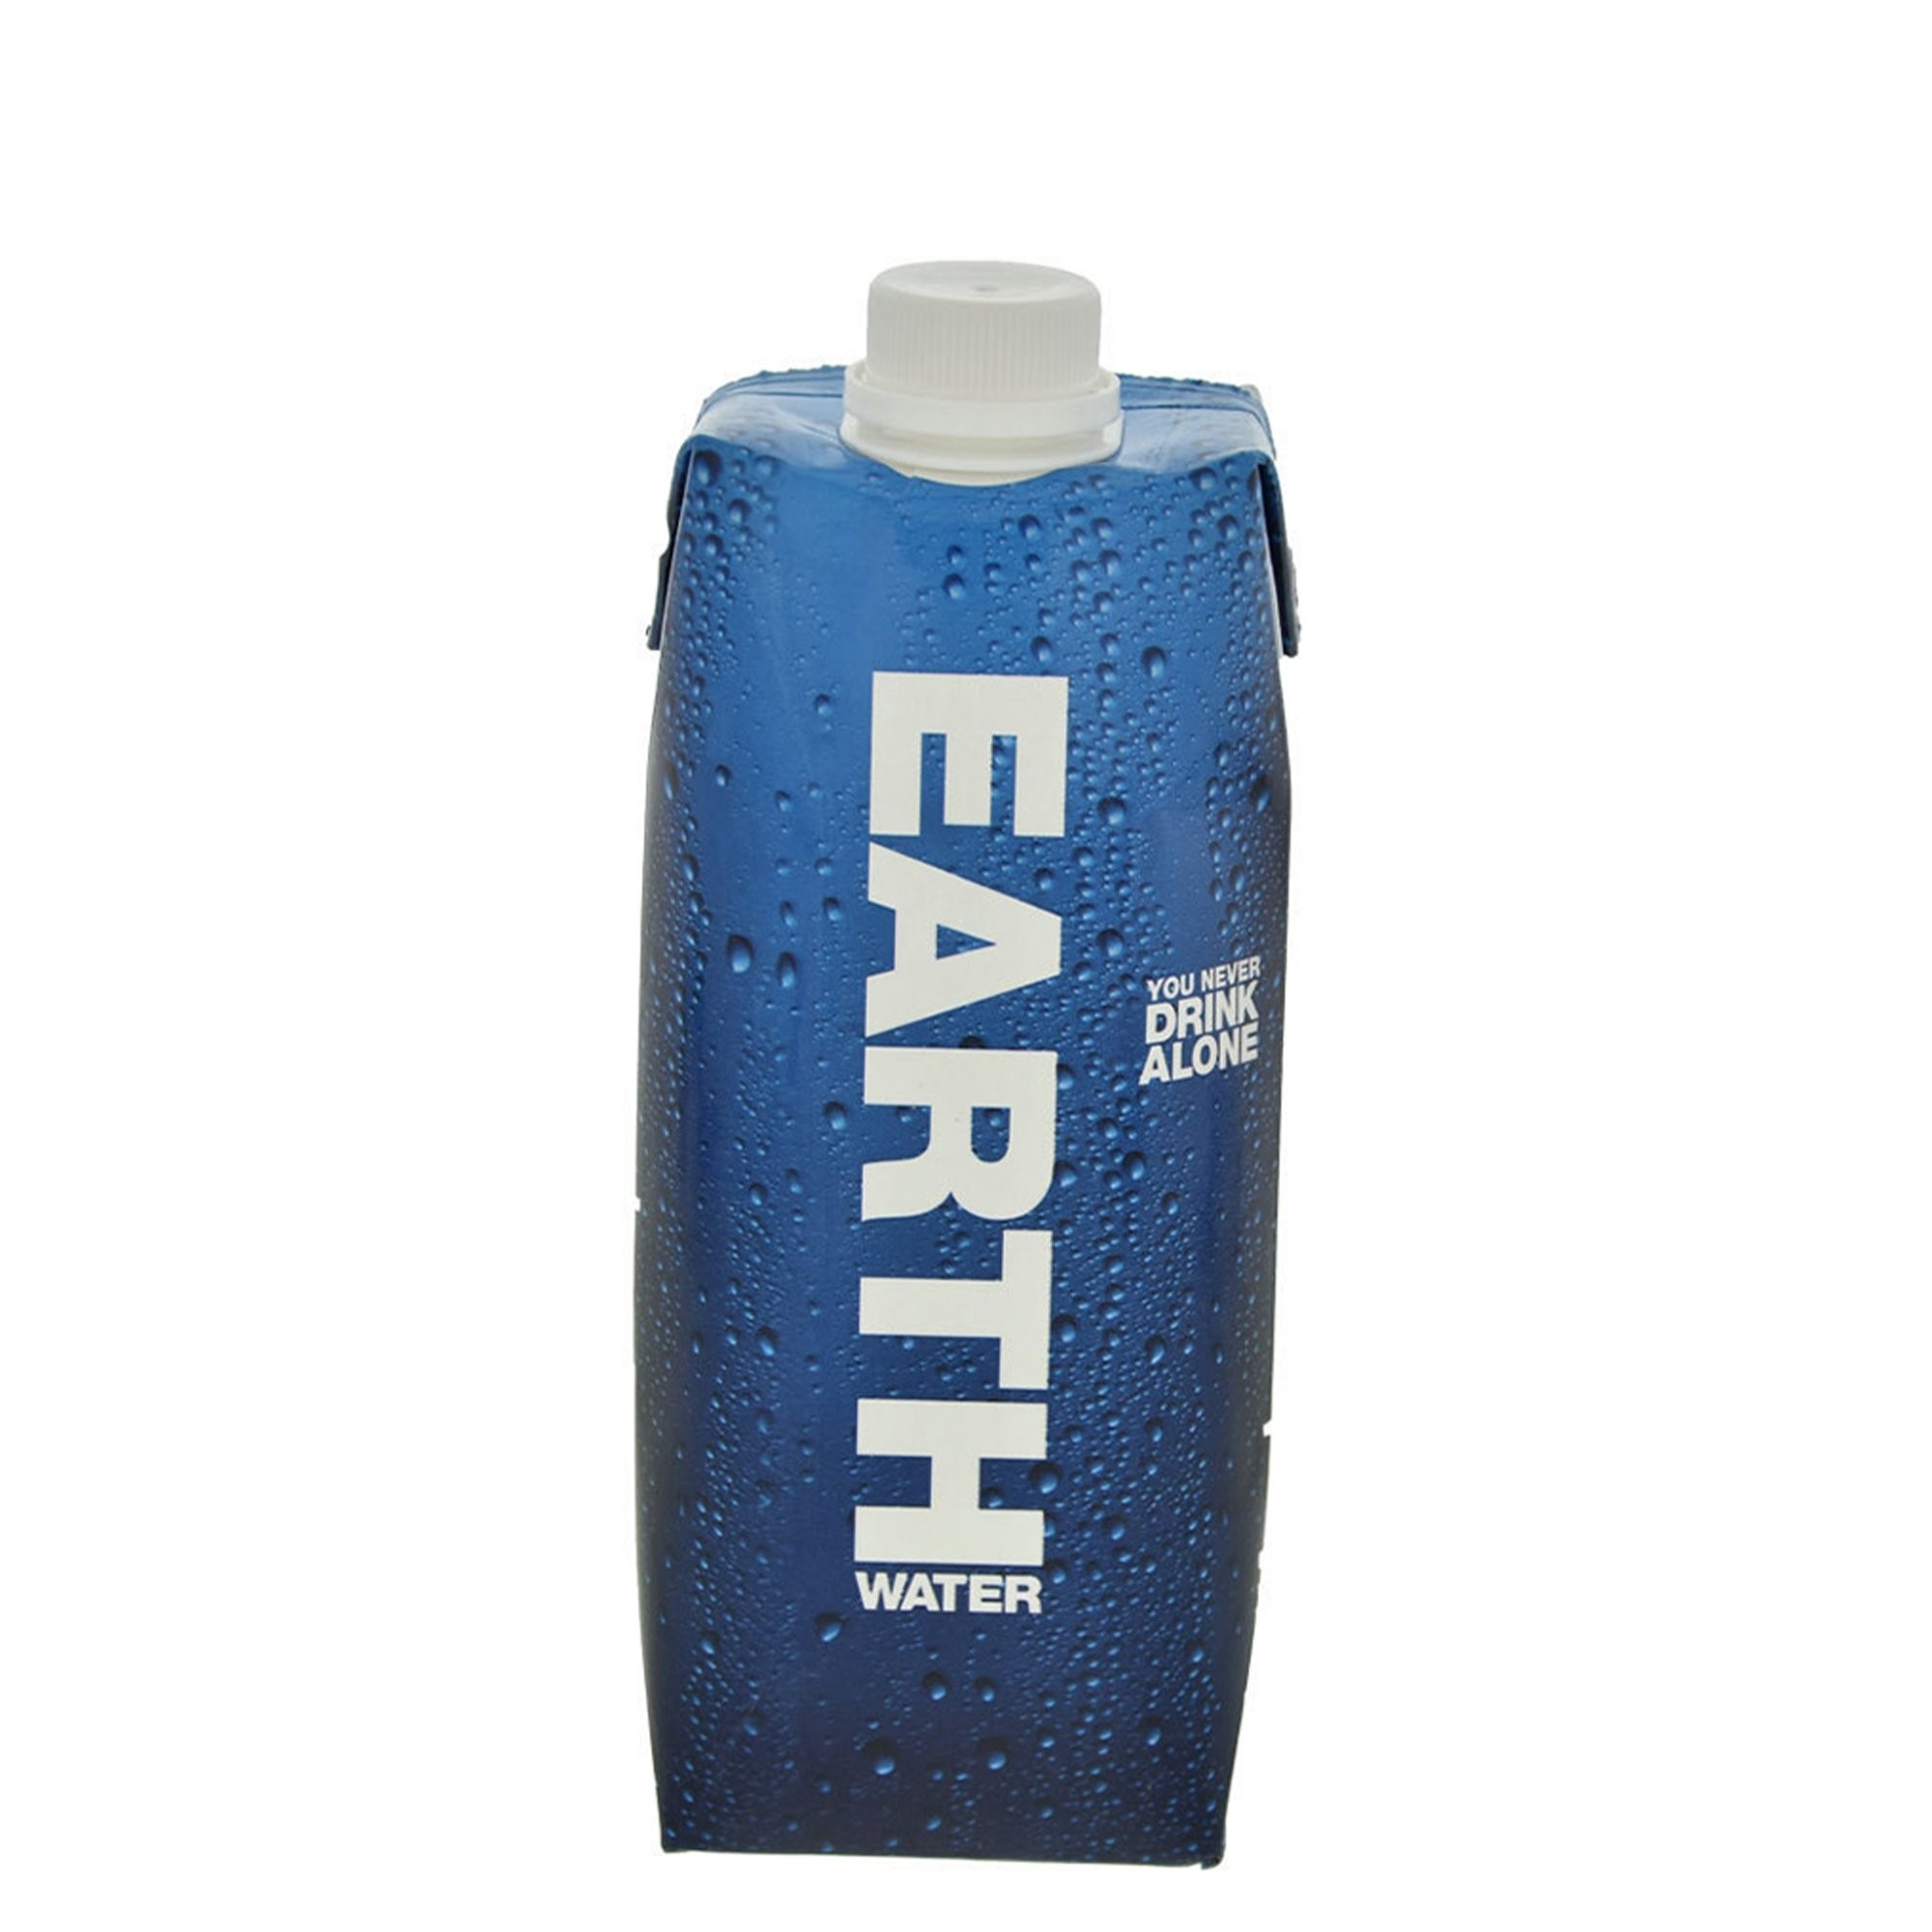 Earth Water plat Tetra Pack 24st. 500ml.